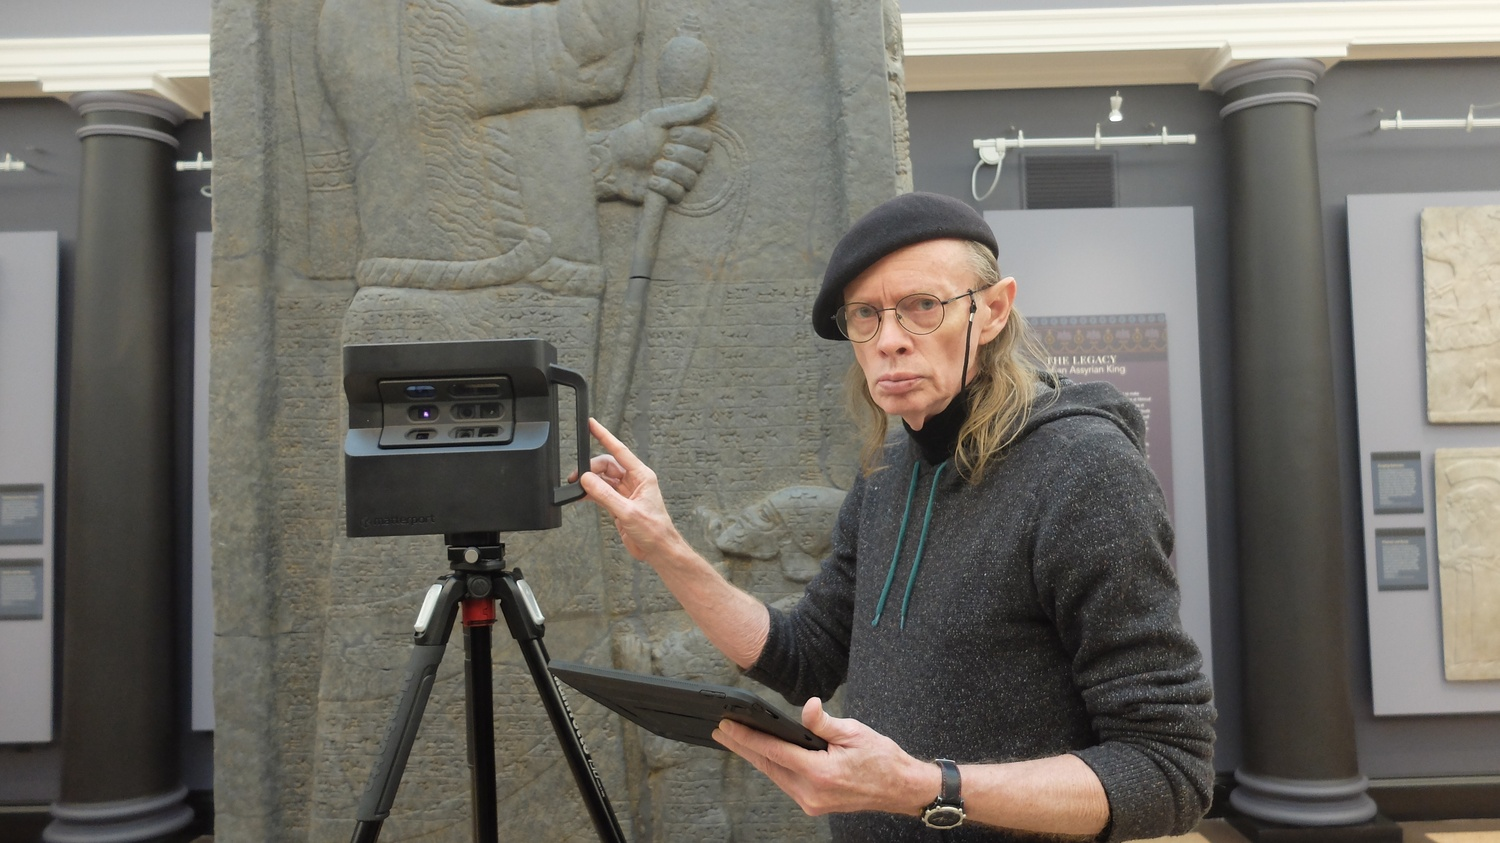 Gant photographs an exhibit at the Semitic Museum with a virtual reality camera.